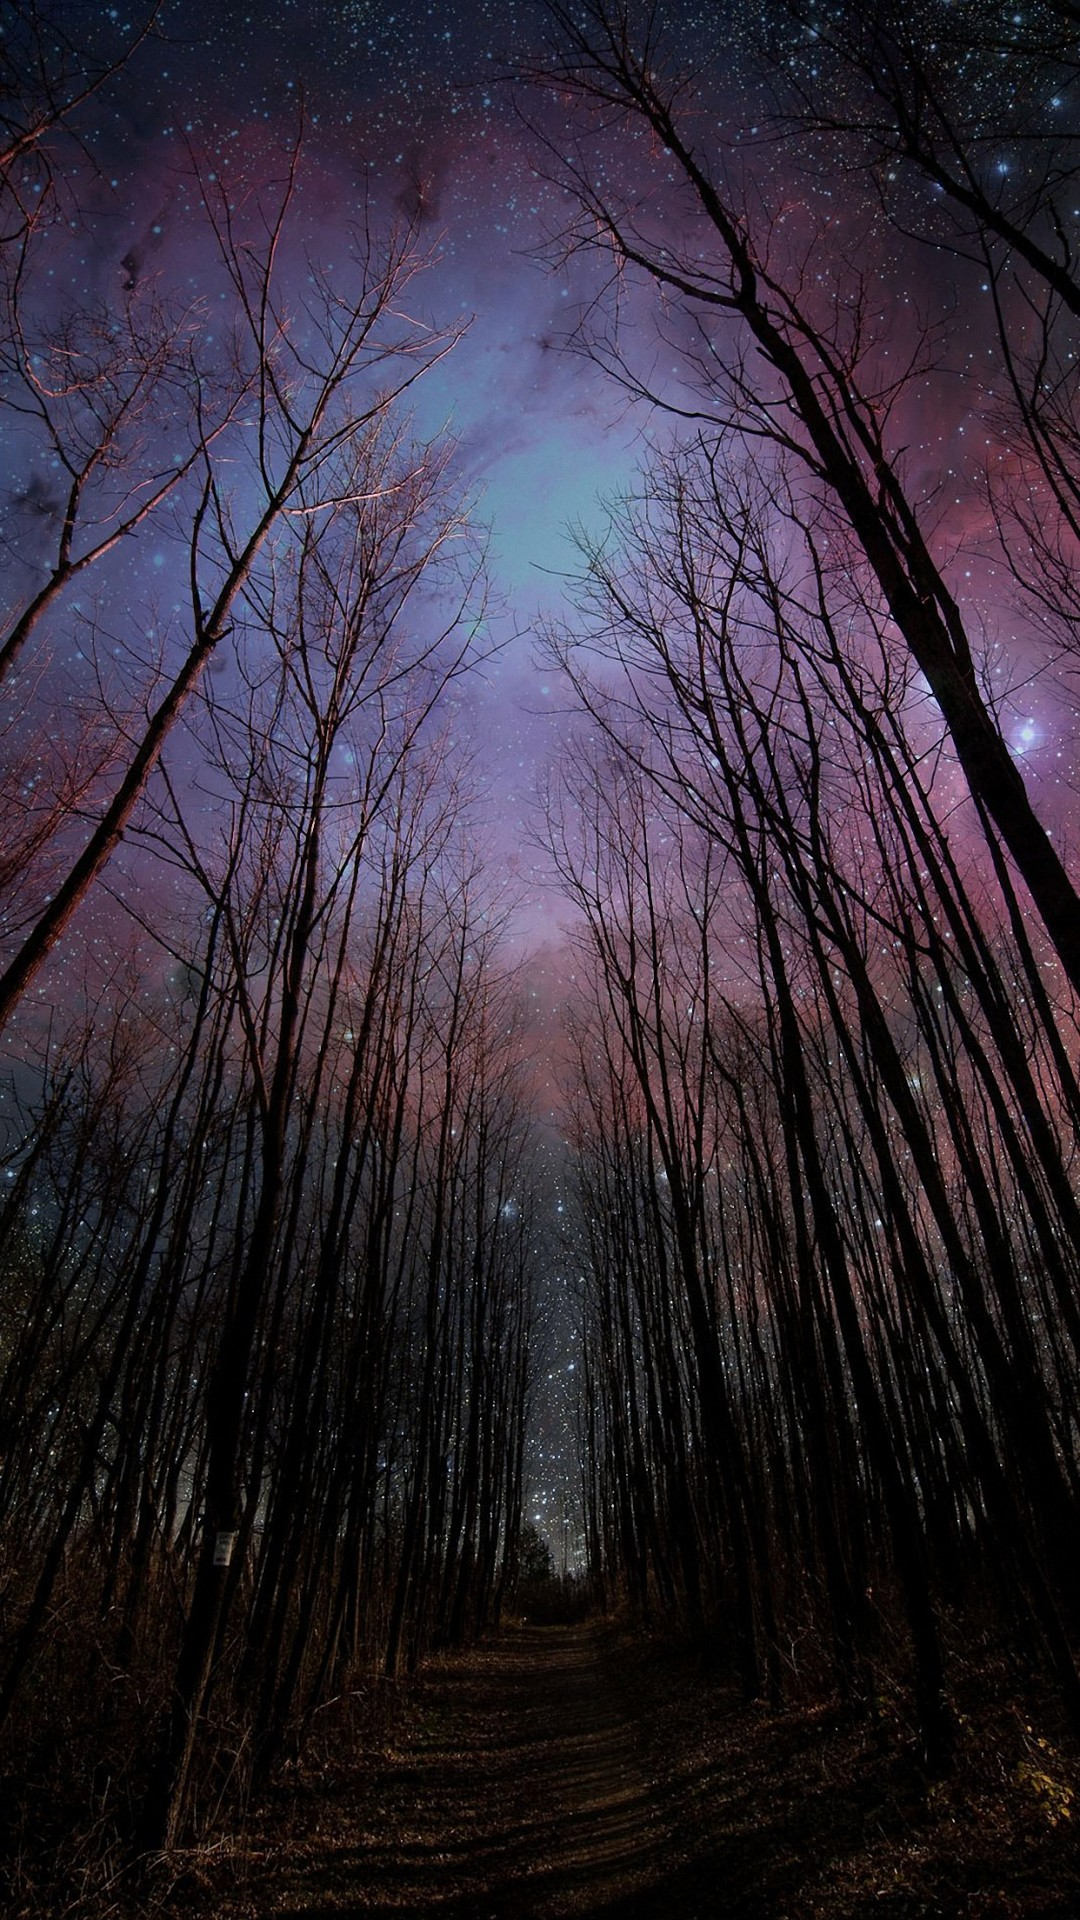 HD fantasy night sky iPhone 6 / 6s / Plus wallpapers, nature mobile  backgrounds download